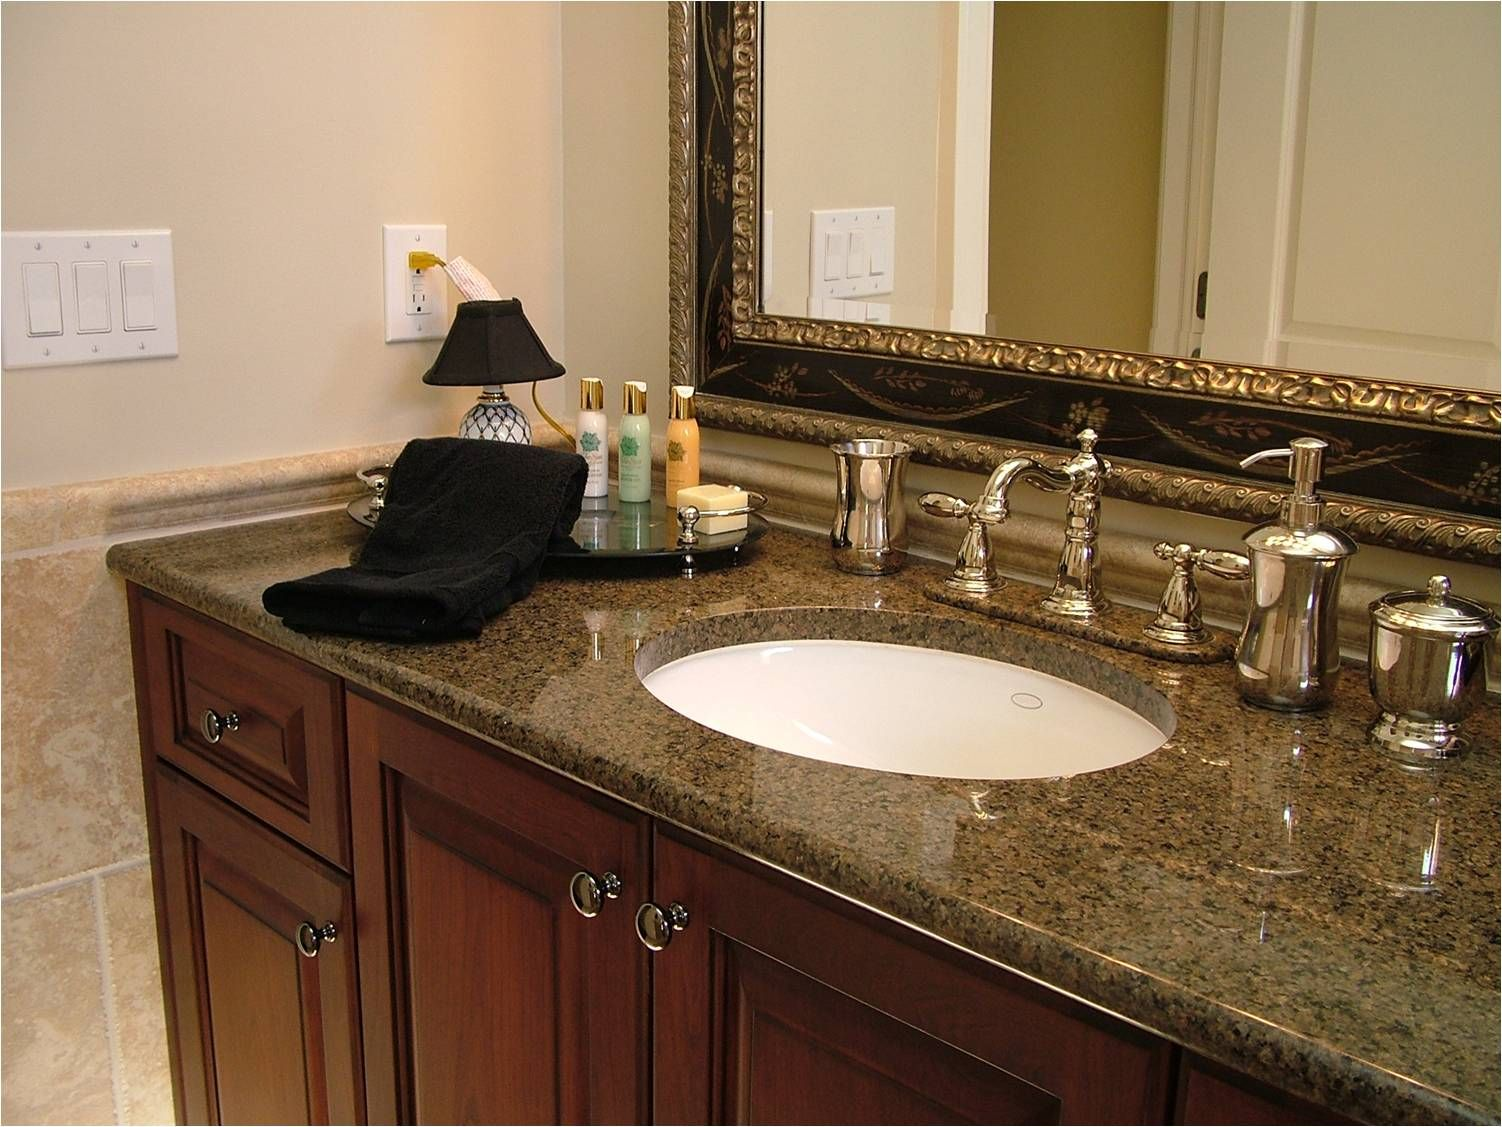 Bathroom Design Virginia Beach dave's granite | natural stone, granite, quartz countertops